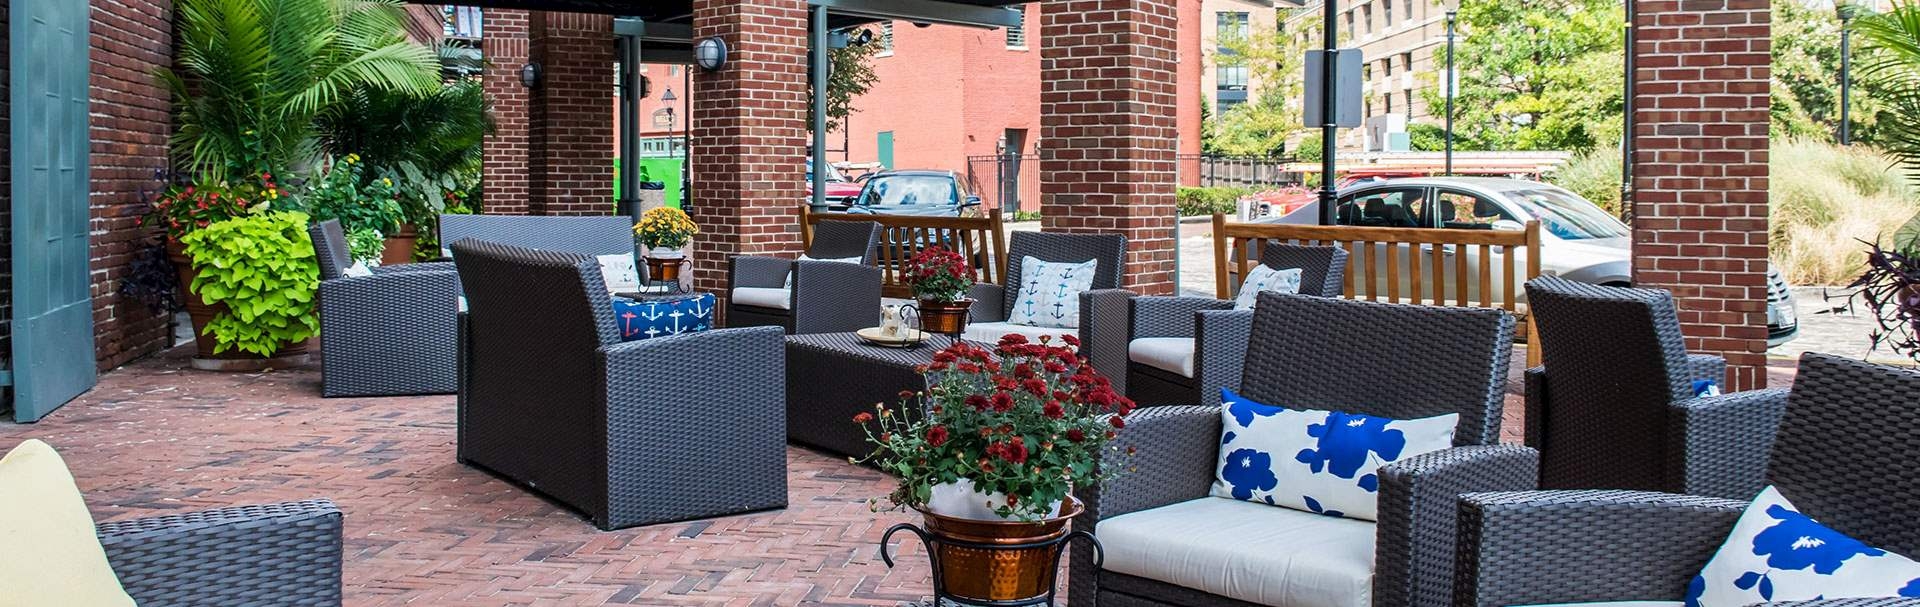 Inn at Henderson's Wharf Fells Point Baltimore